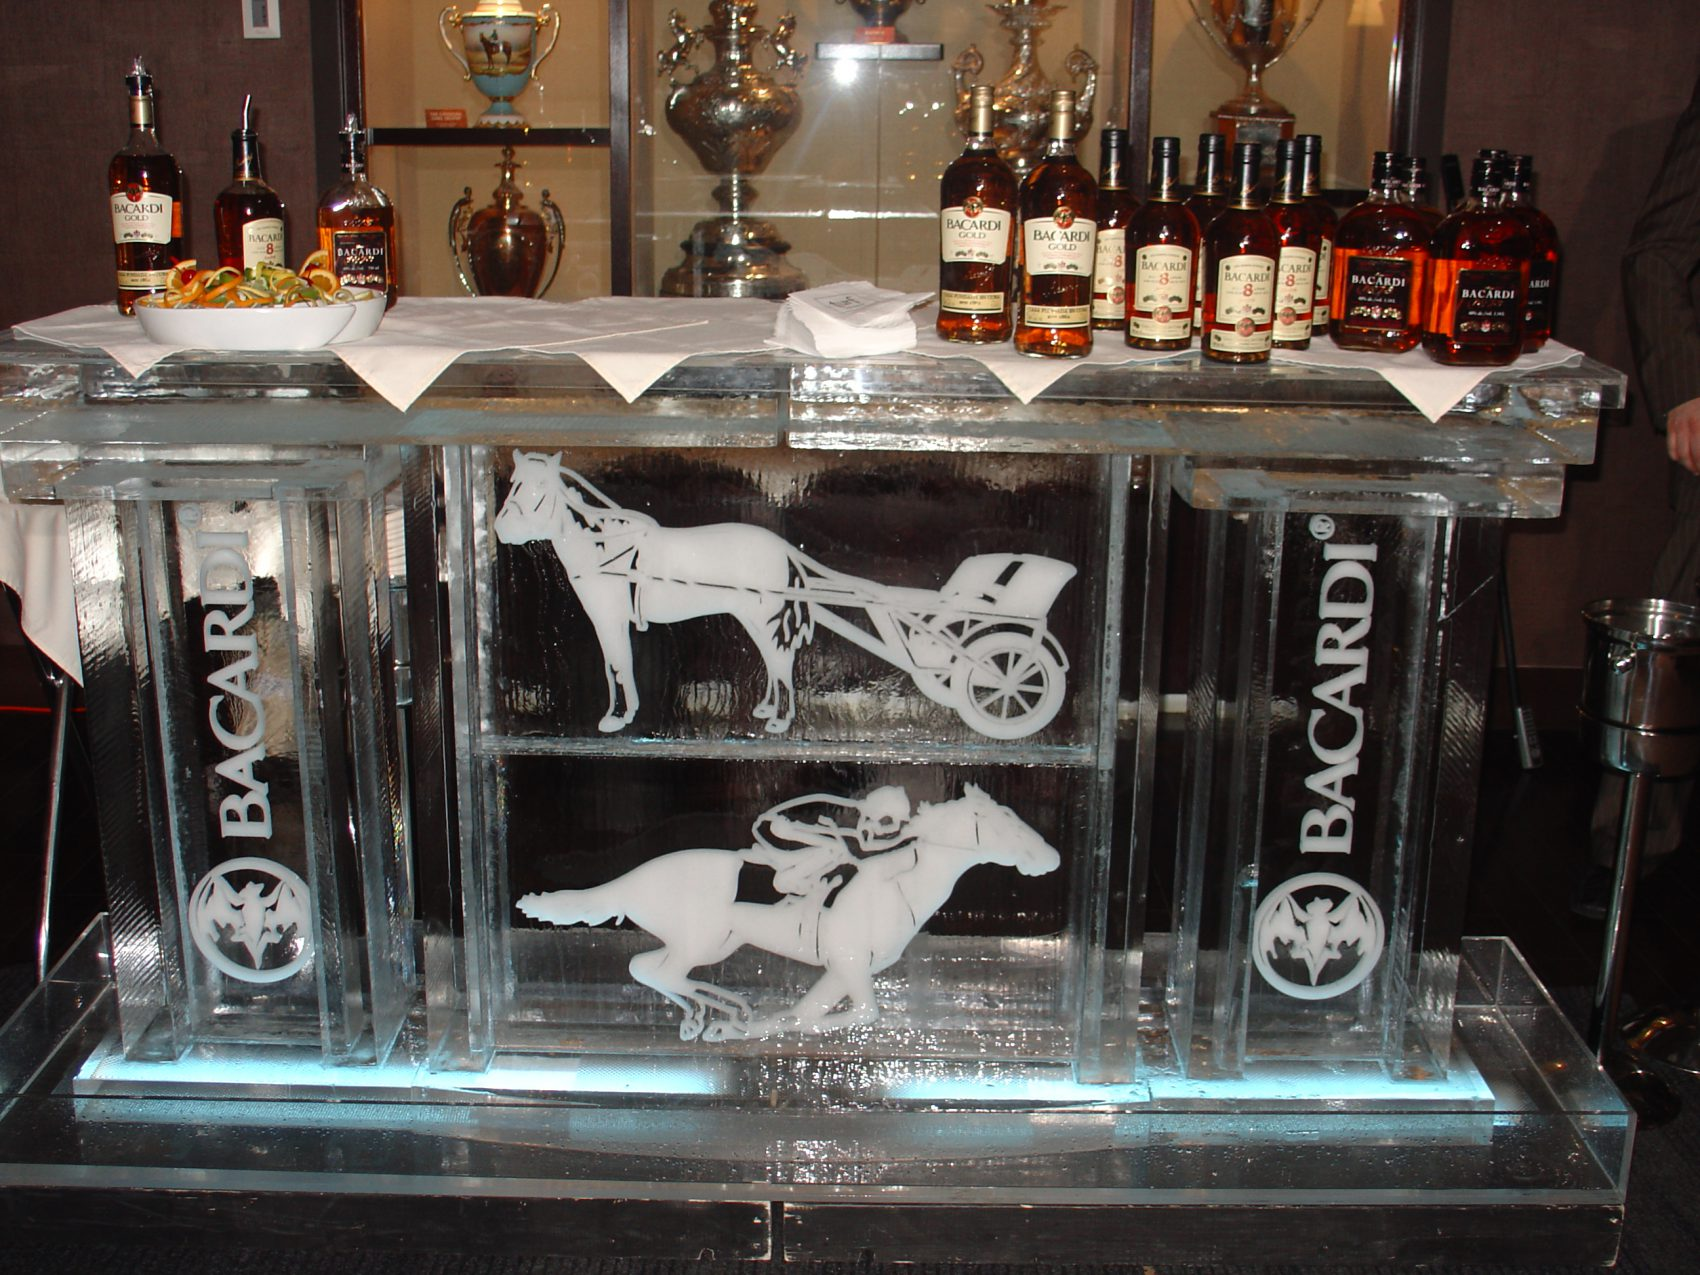 Bacardi Ice bar with horse races